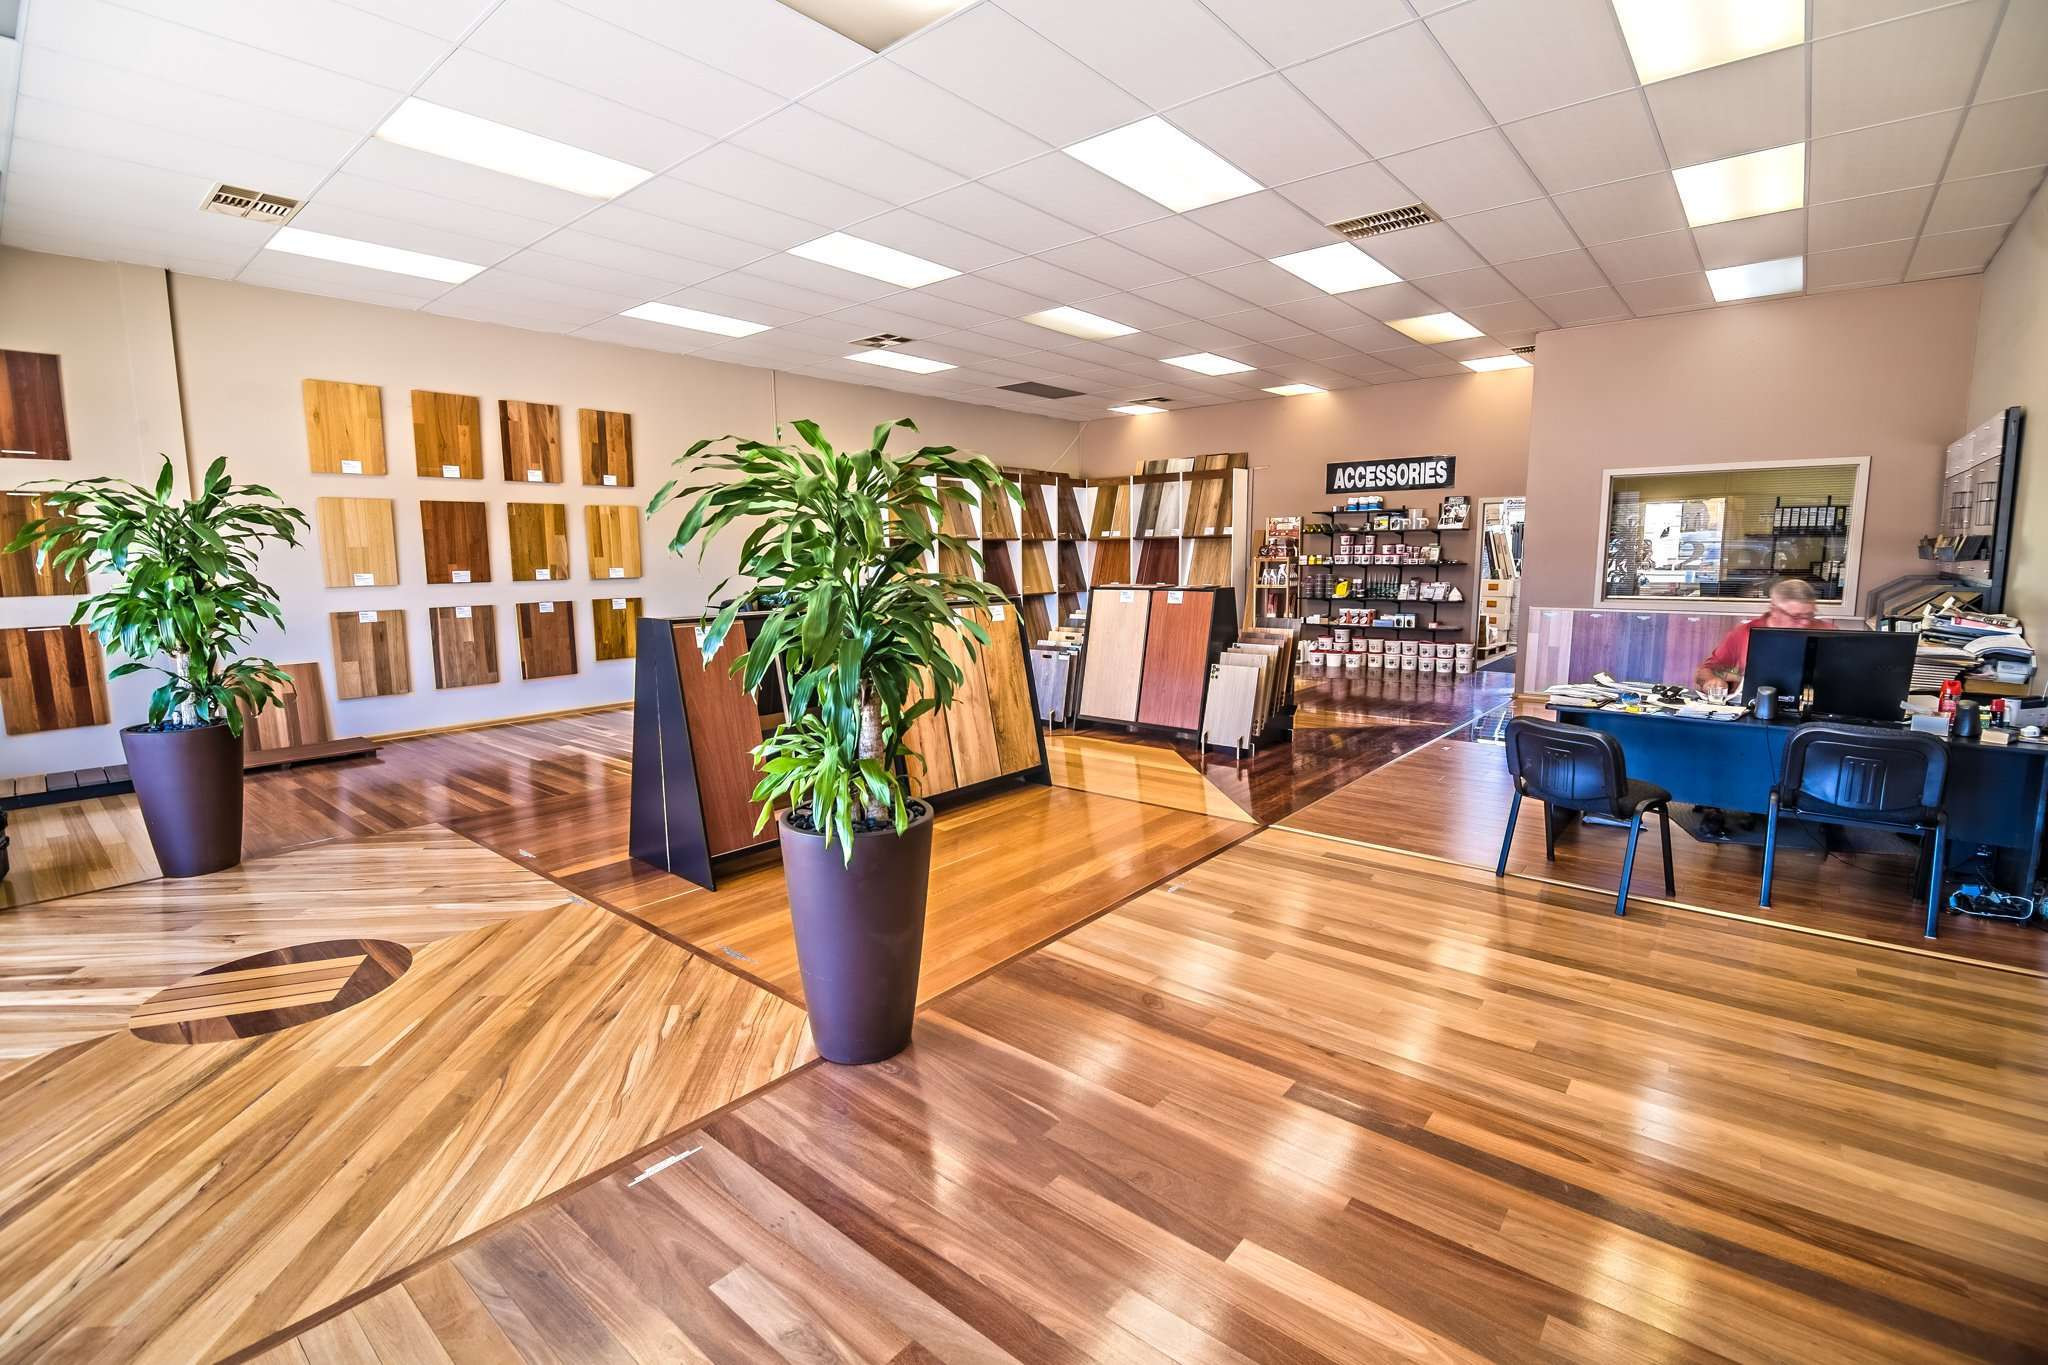 Tg Engineered Hardwood Flooring Of Wood Floor Price Lists A1 Wood Floors within 4 1451 Albany Hwy Cannington